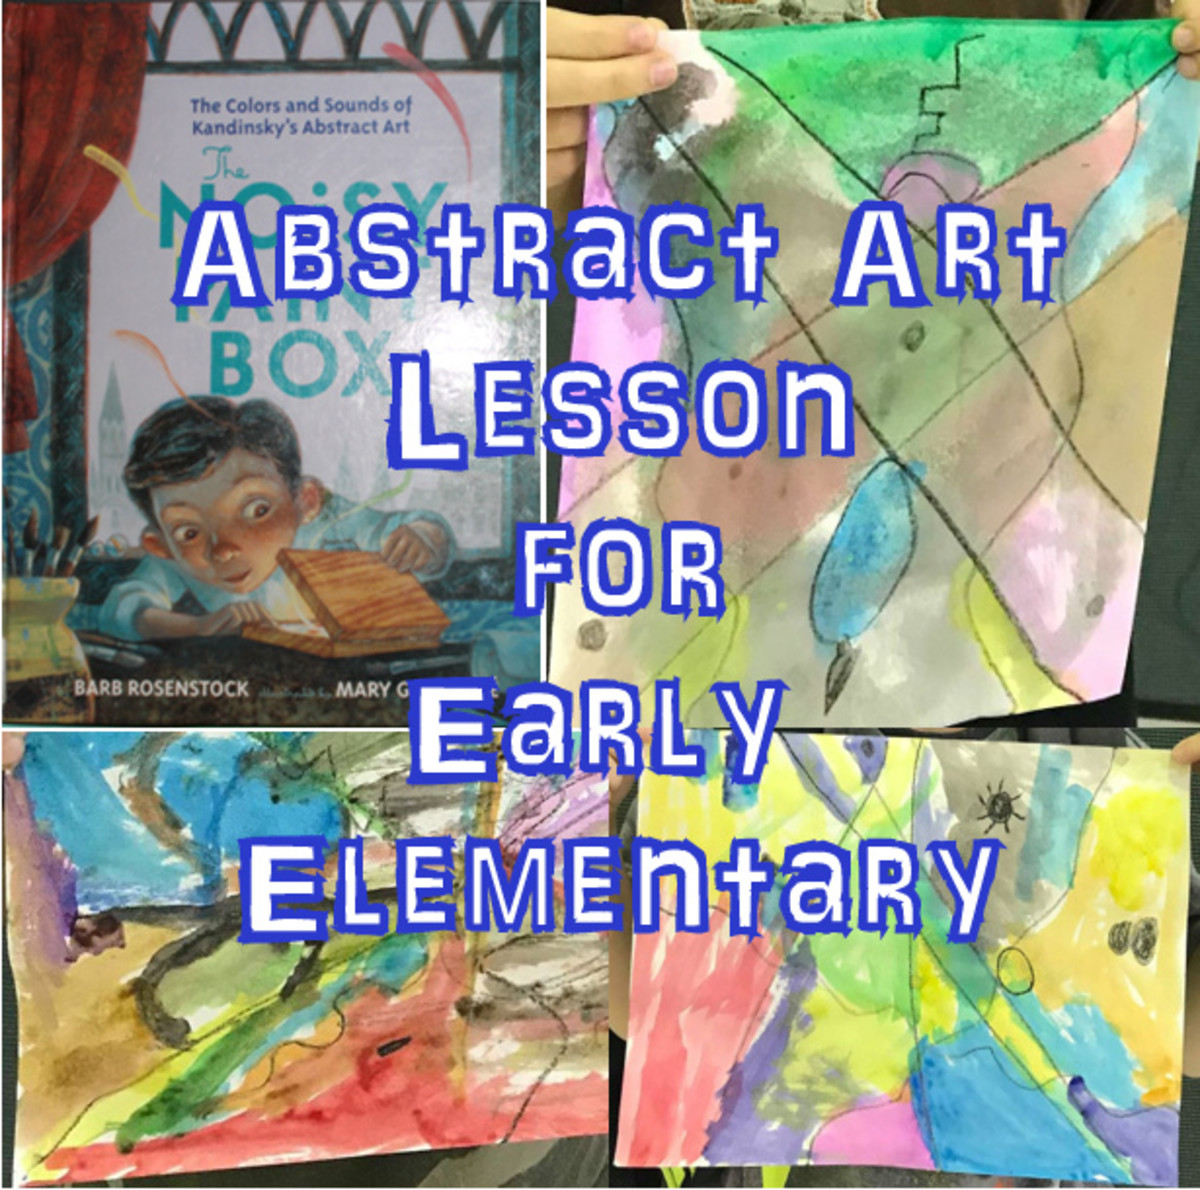 Abstract Art Lesson for Early Elementary